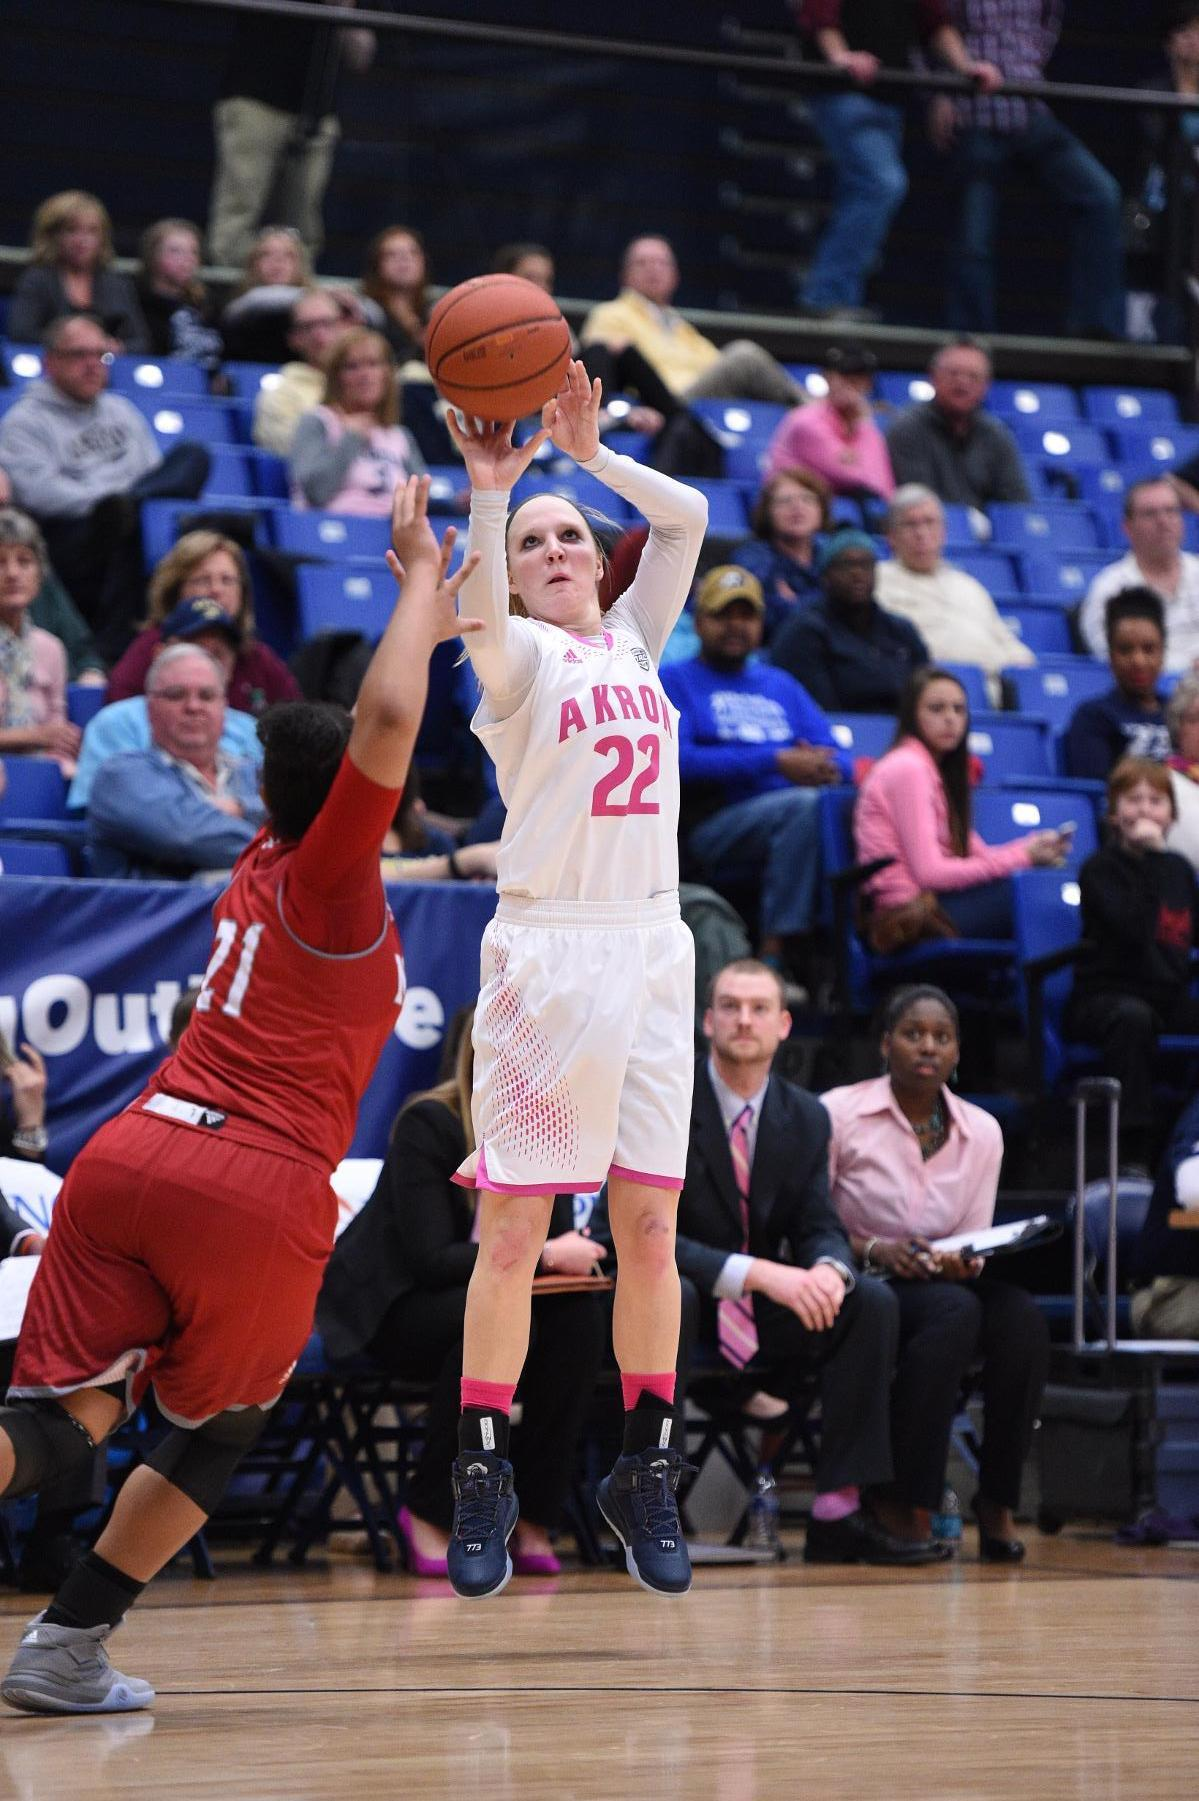 Hannah Plybon's career-high 26 points leads the Zips to a win over Miami (Ohio)